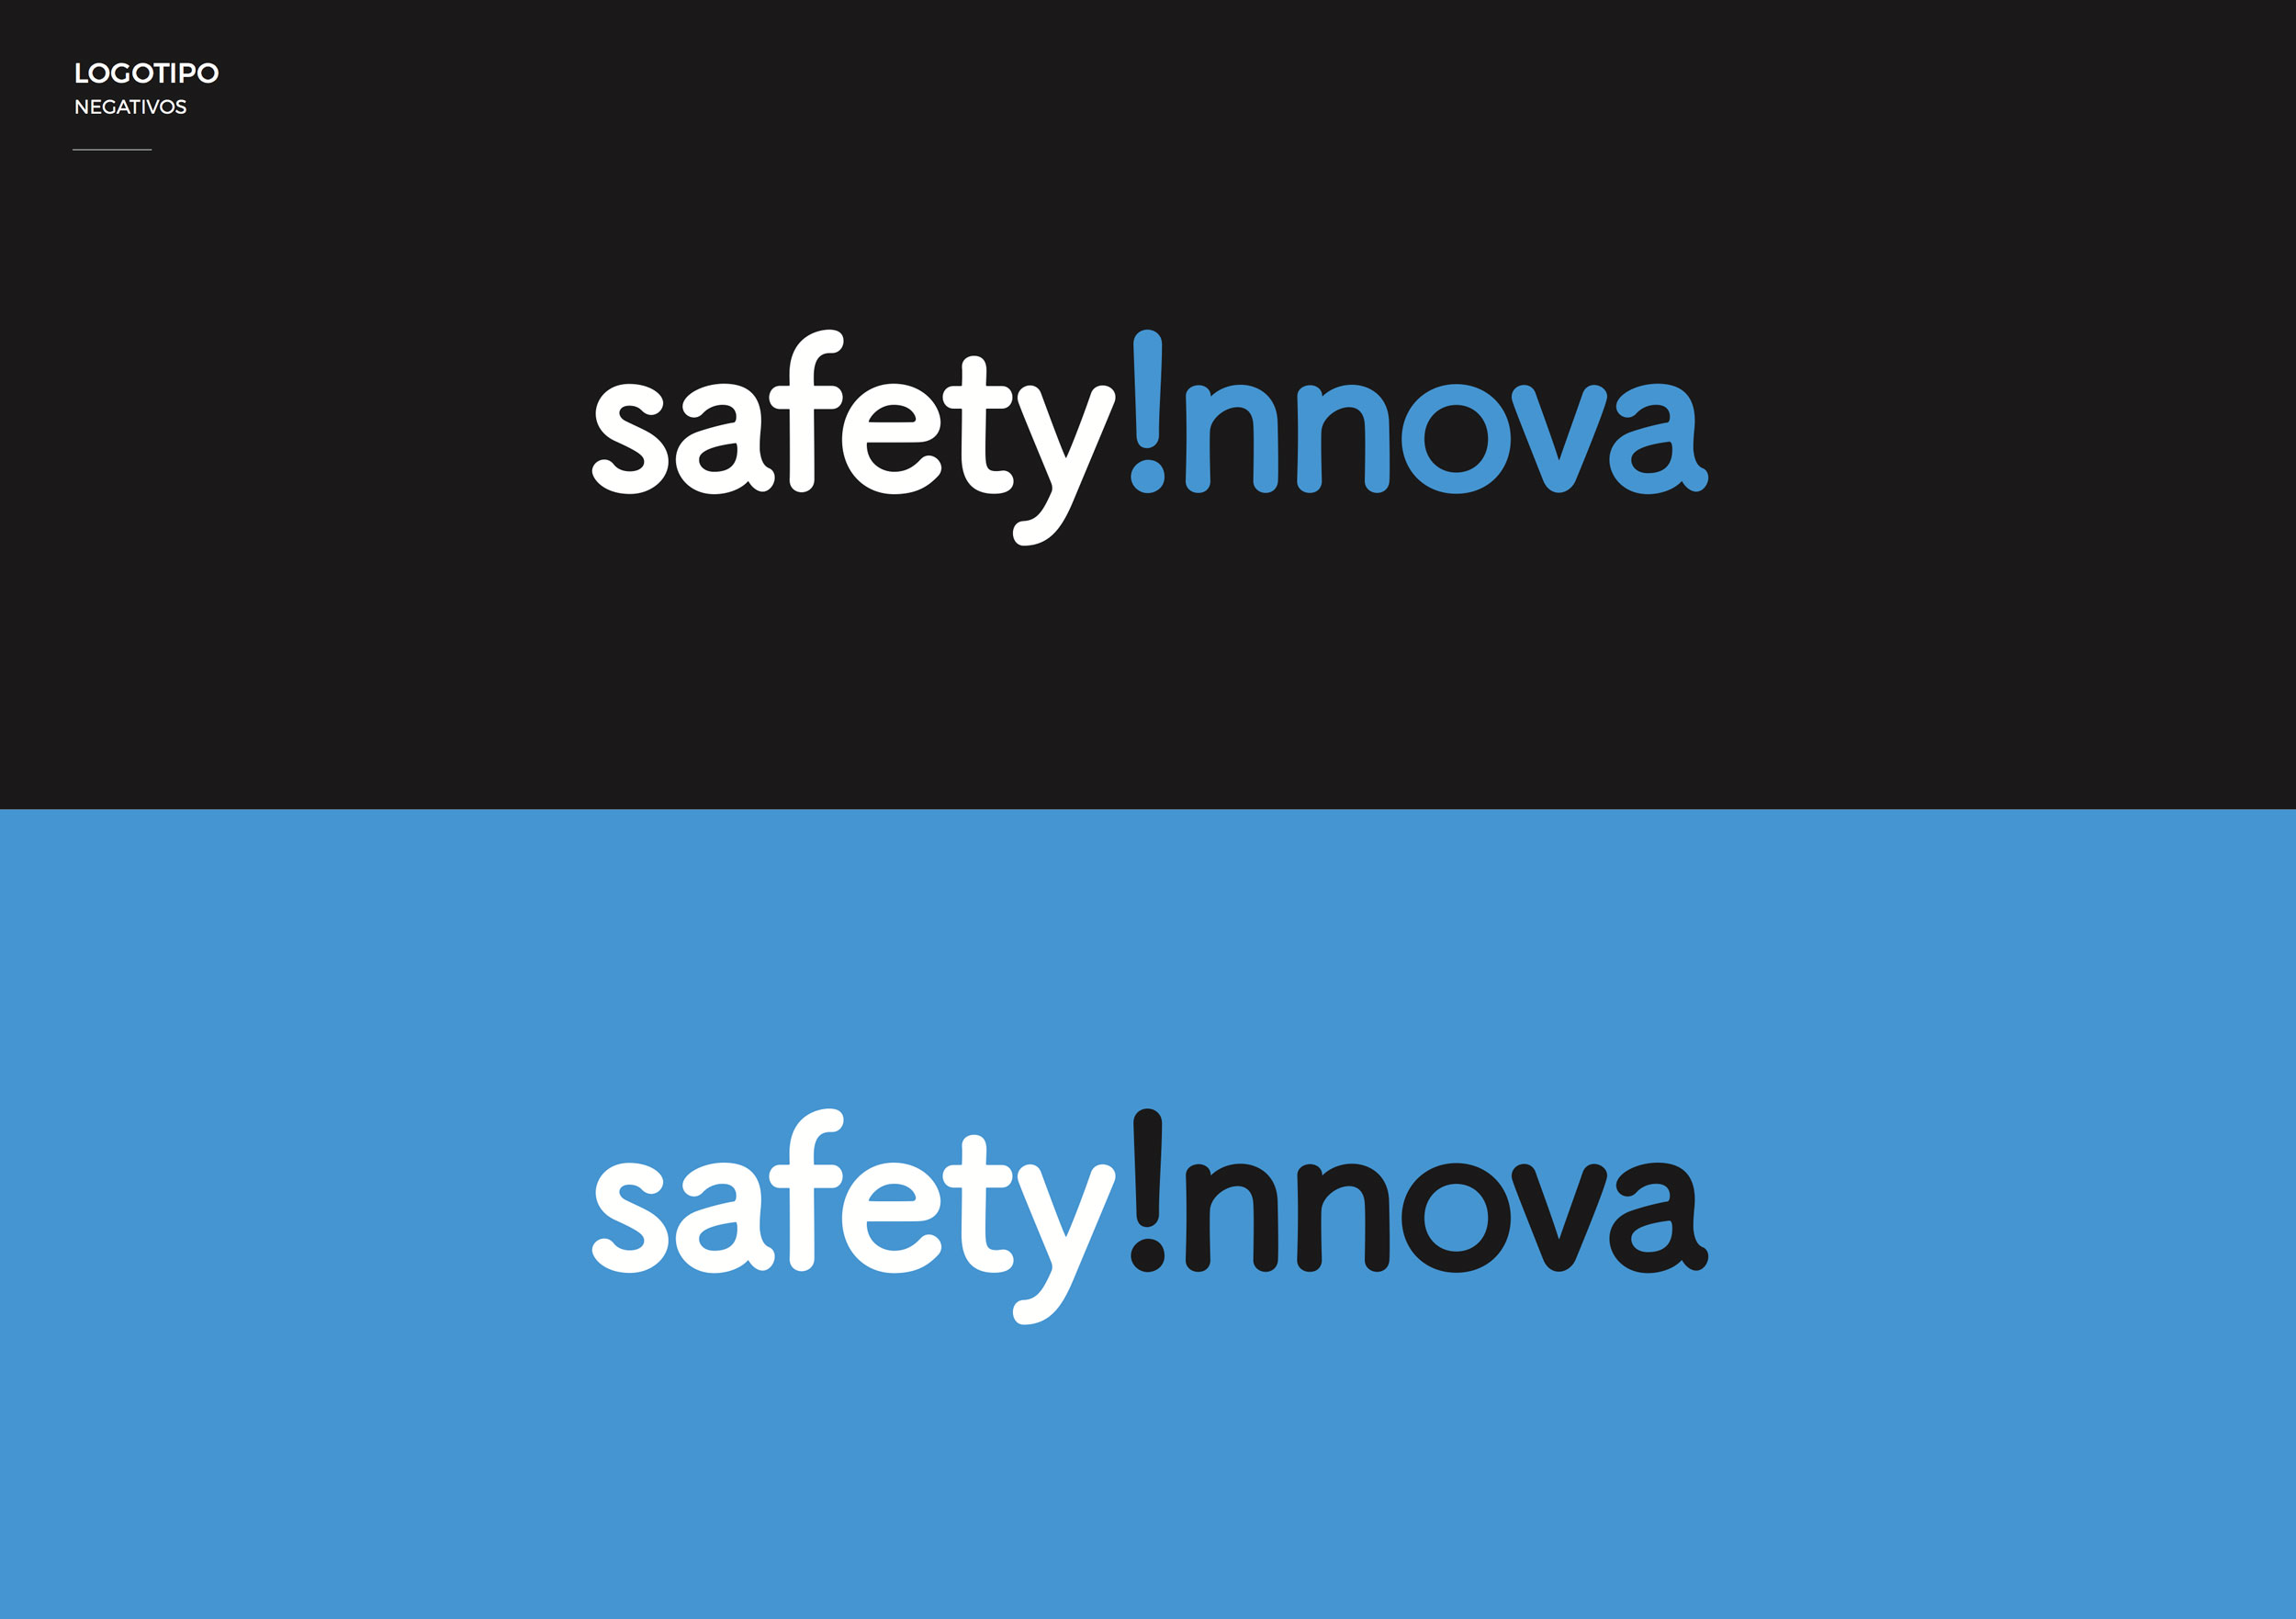 LOGO-FONDOS-SAFETY